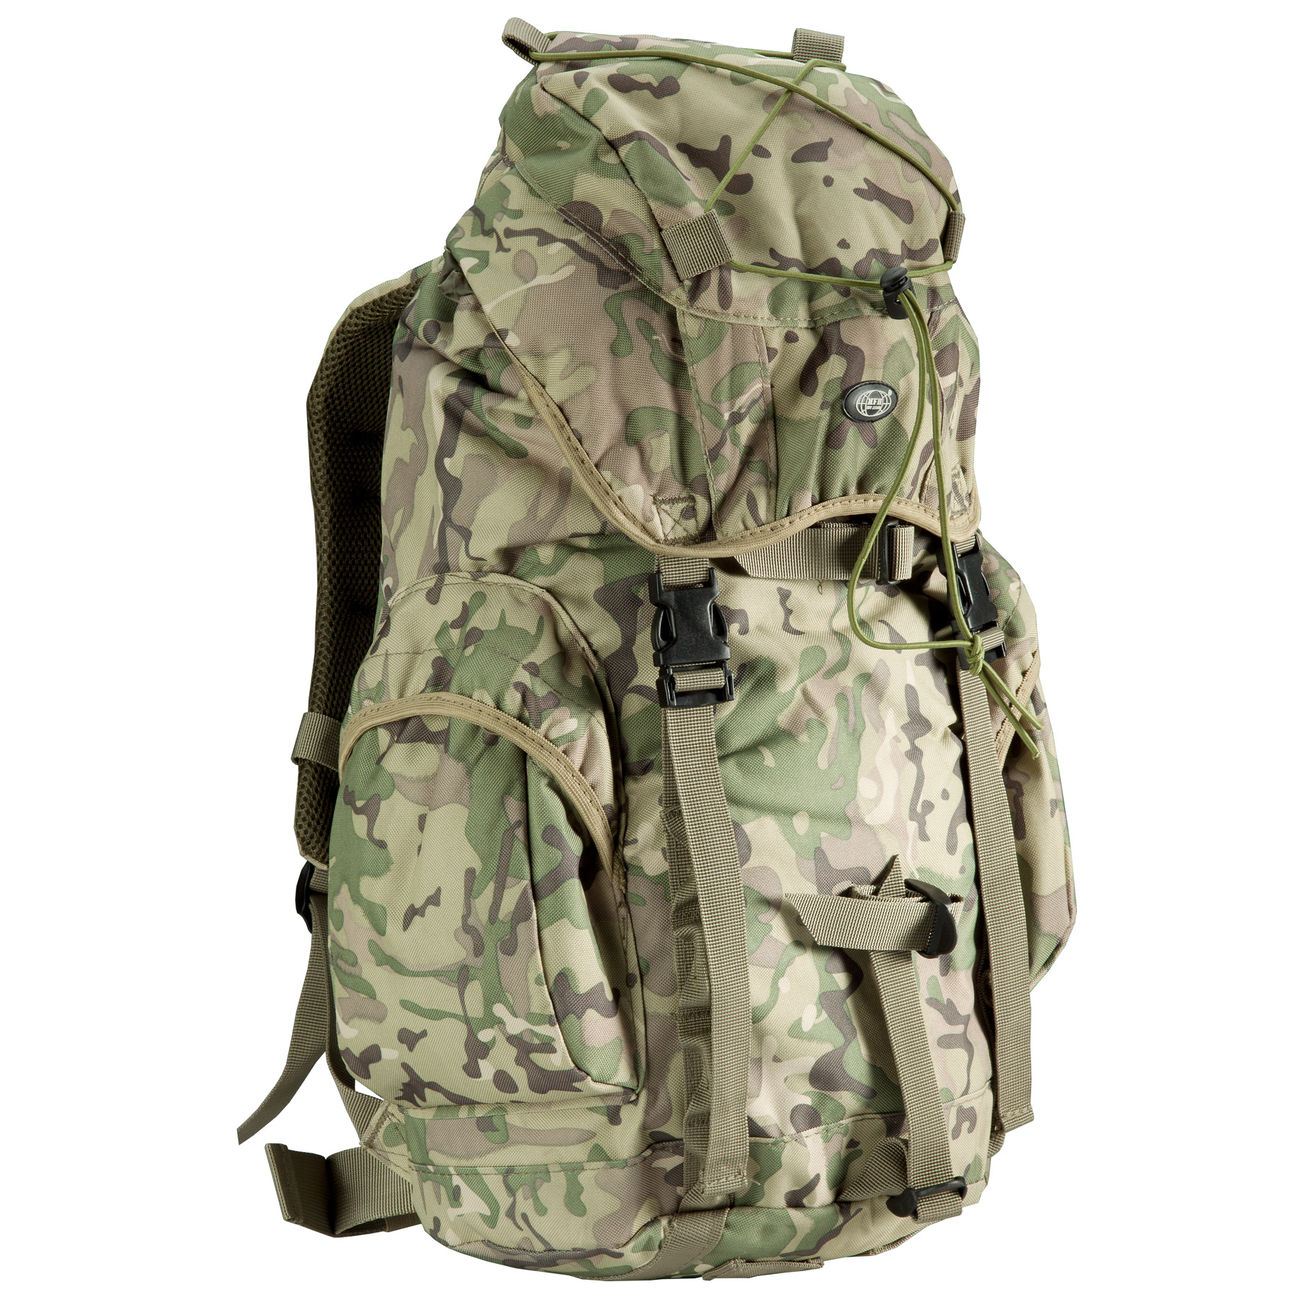 MFH Rucksack Recon III operation-camo 0